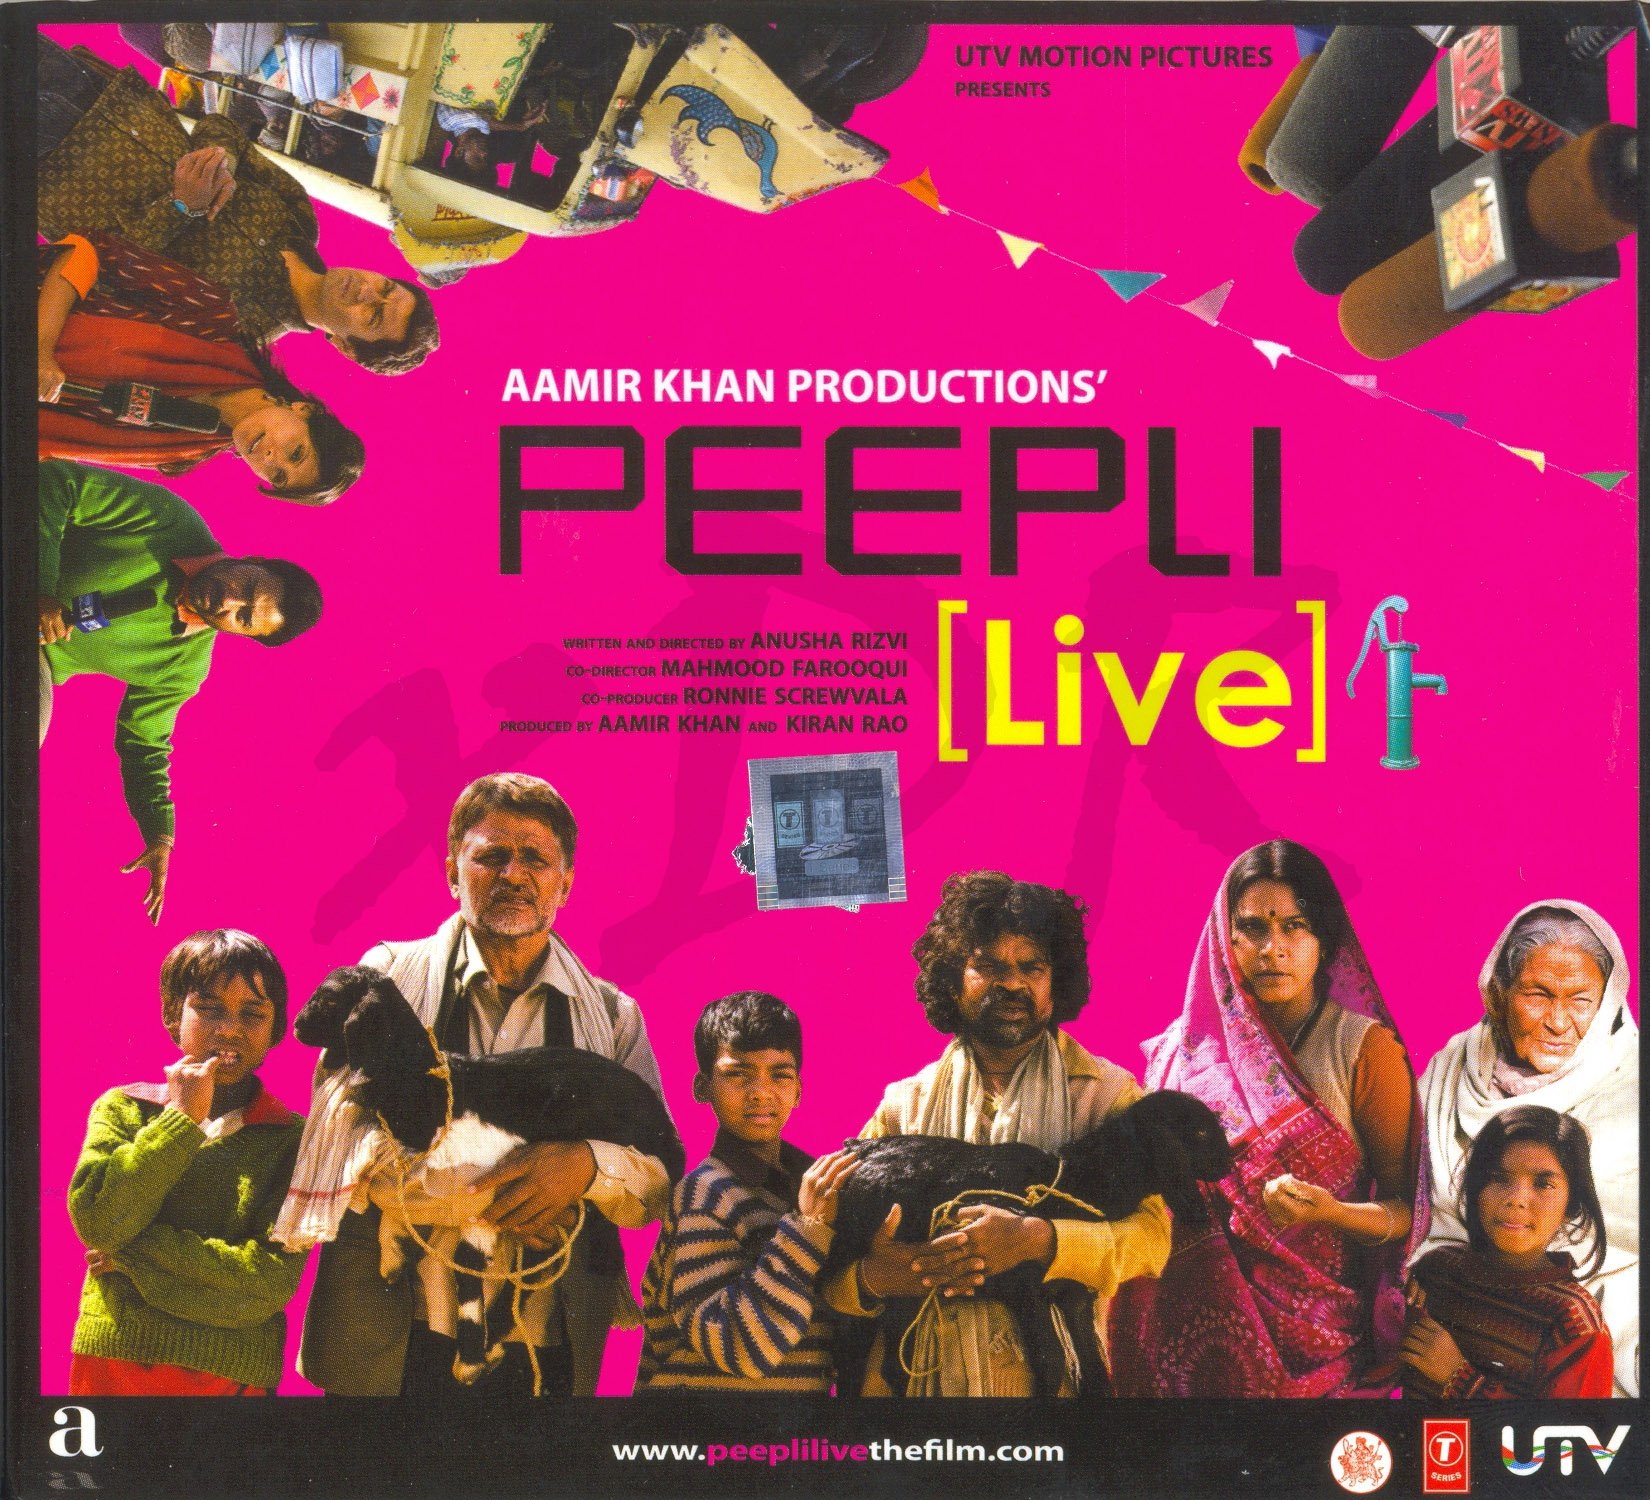 Peepli [Live] (New Hindi Film Songs / Bollywood Movie Soundtrack / Indian Cinema Music CD)